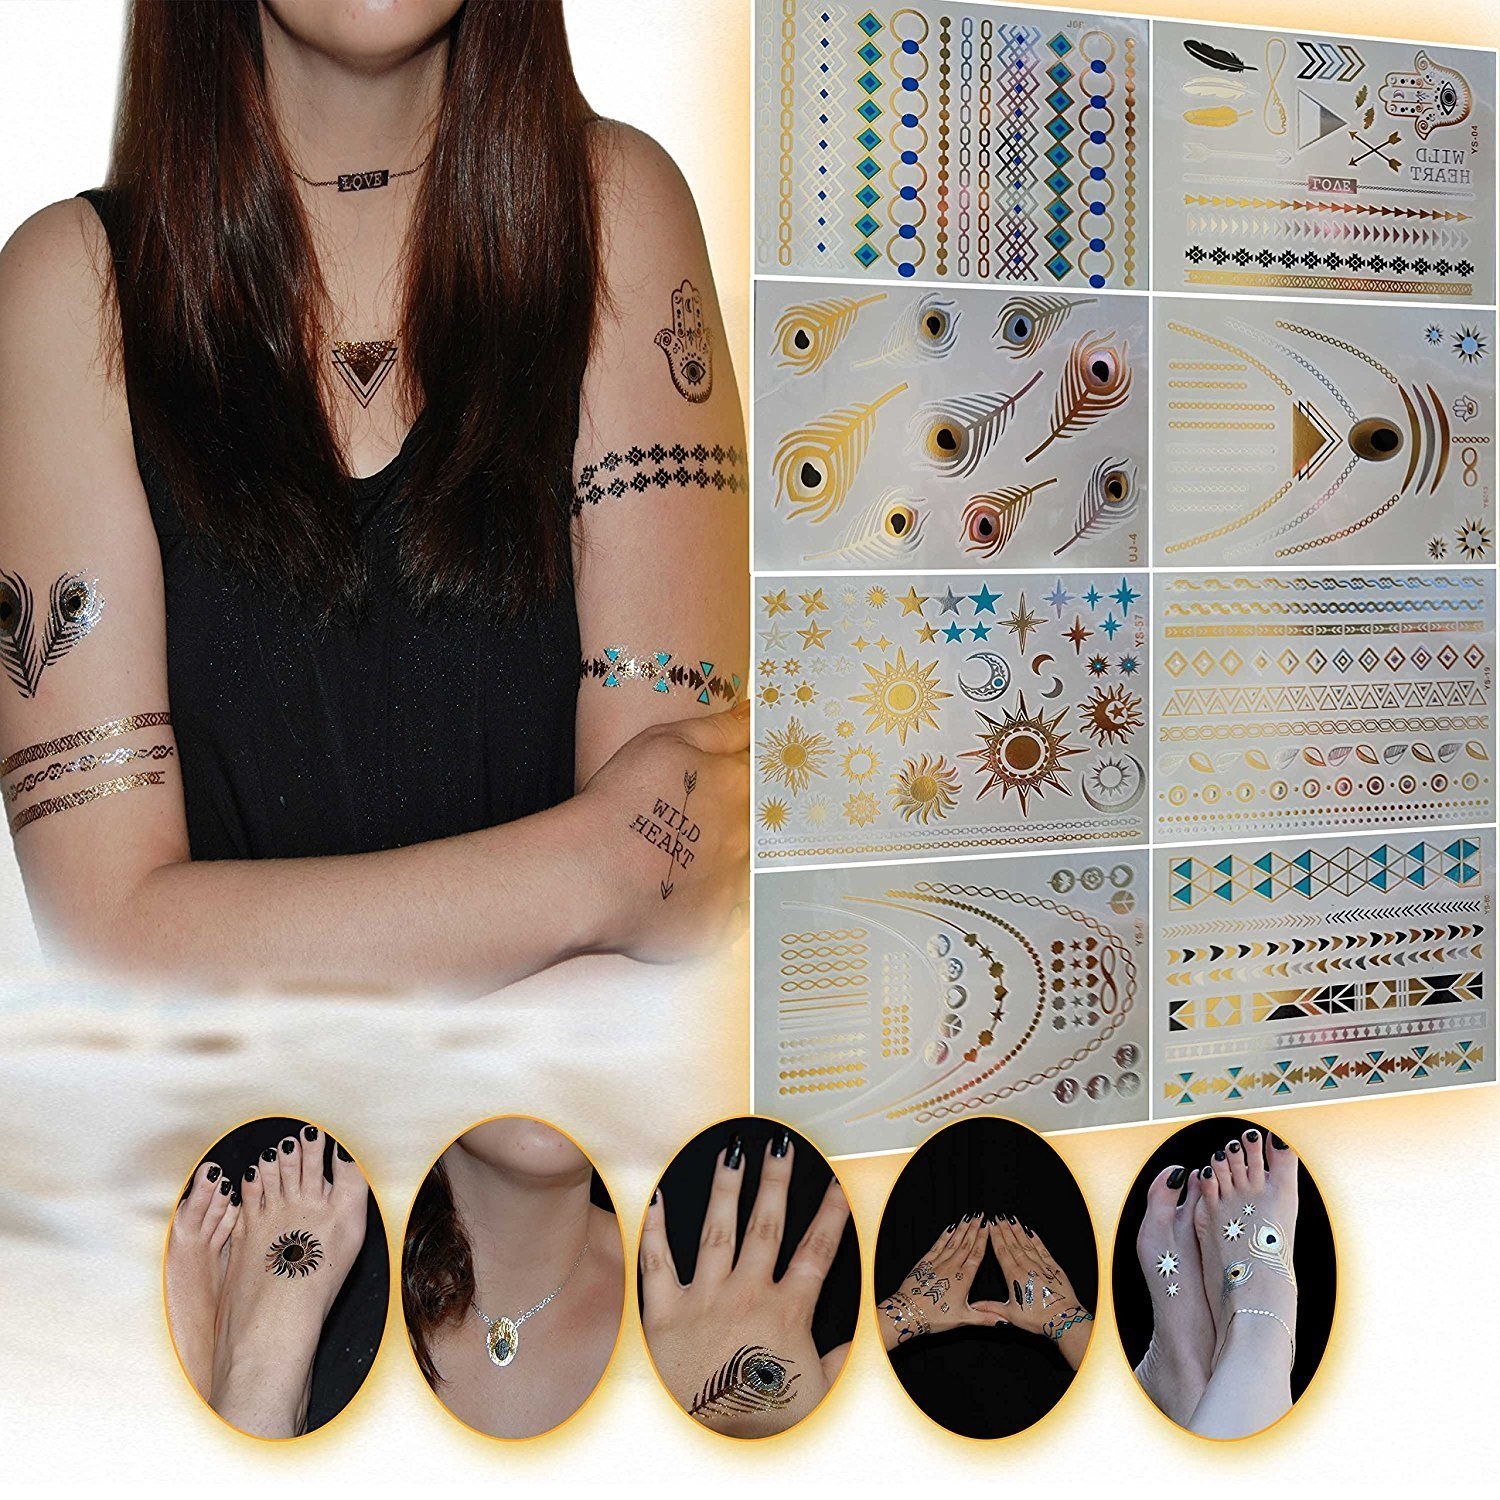 Metallic Temporary Tattoos - 150+ Color Flash Hot Fake Waterproof Tattoo Stickers Jewelry Inspired Temporary Tattoos in Gold, Silver, Black & Turquiose (8 Sheets)